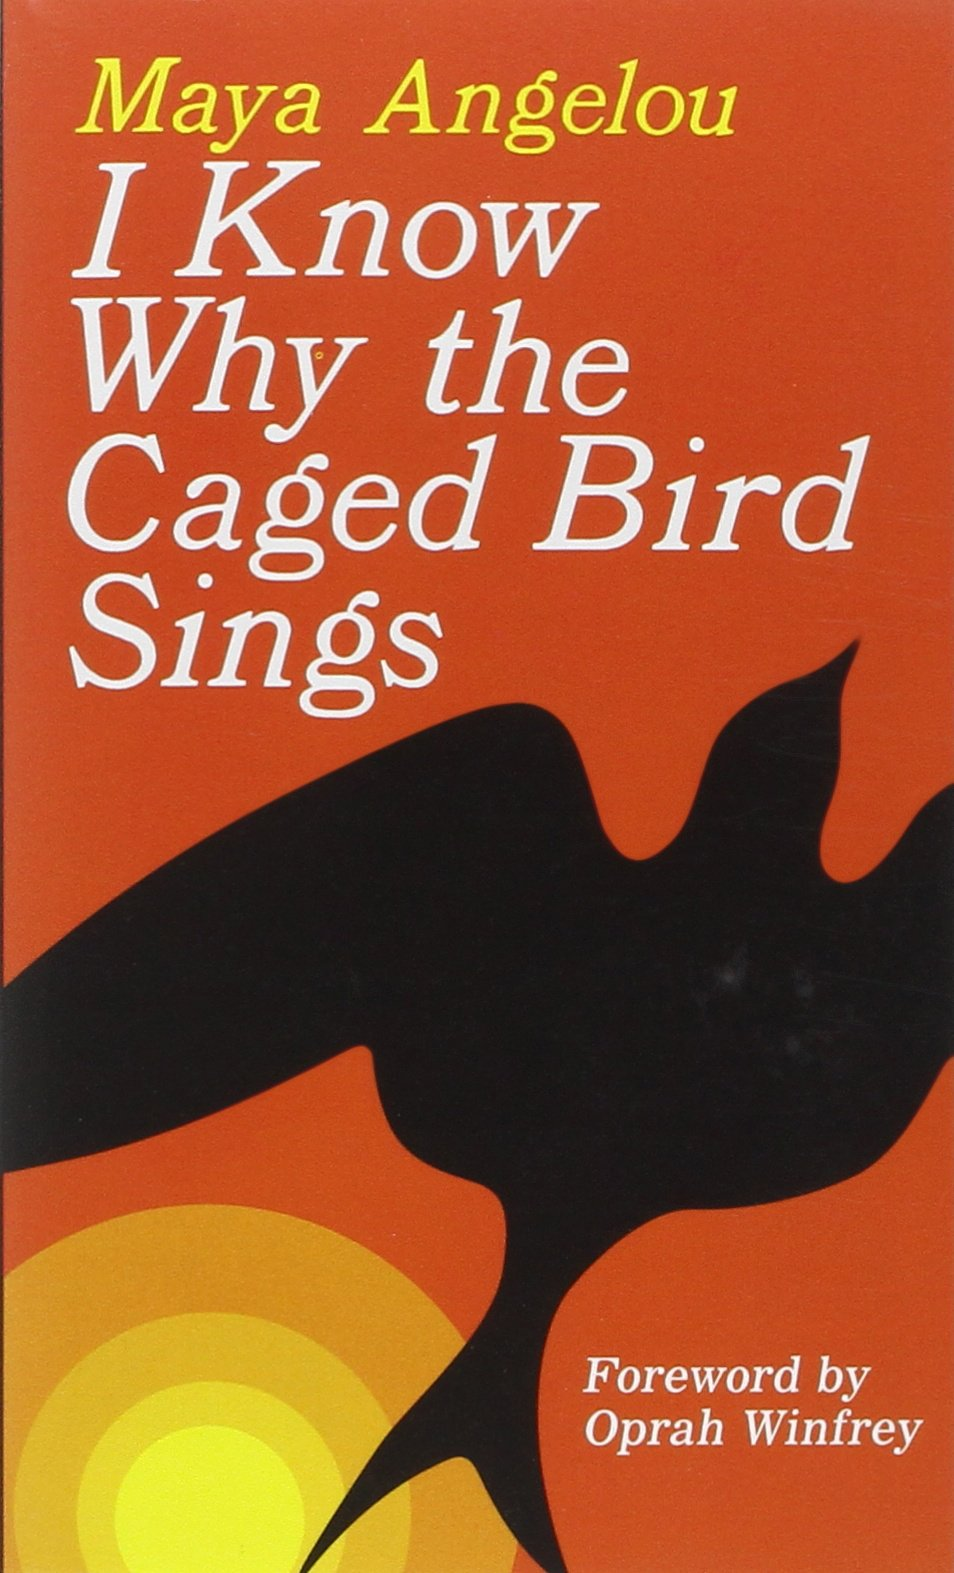 Image result for I Know Why the Caged Bird Sings by Maya Angelou